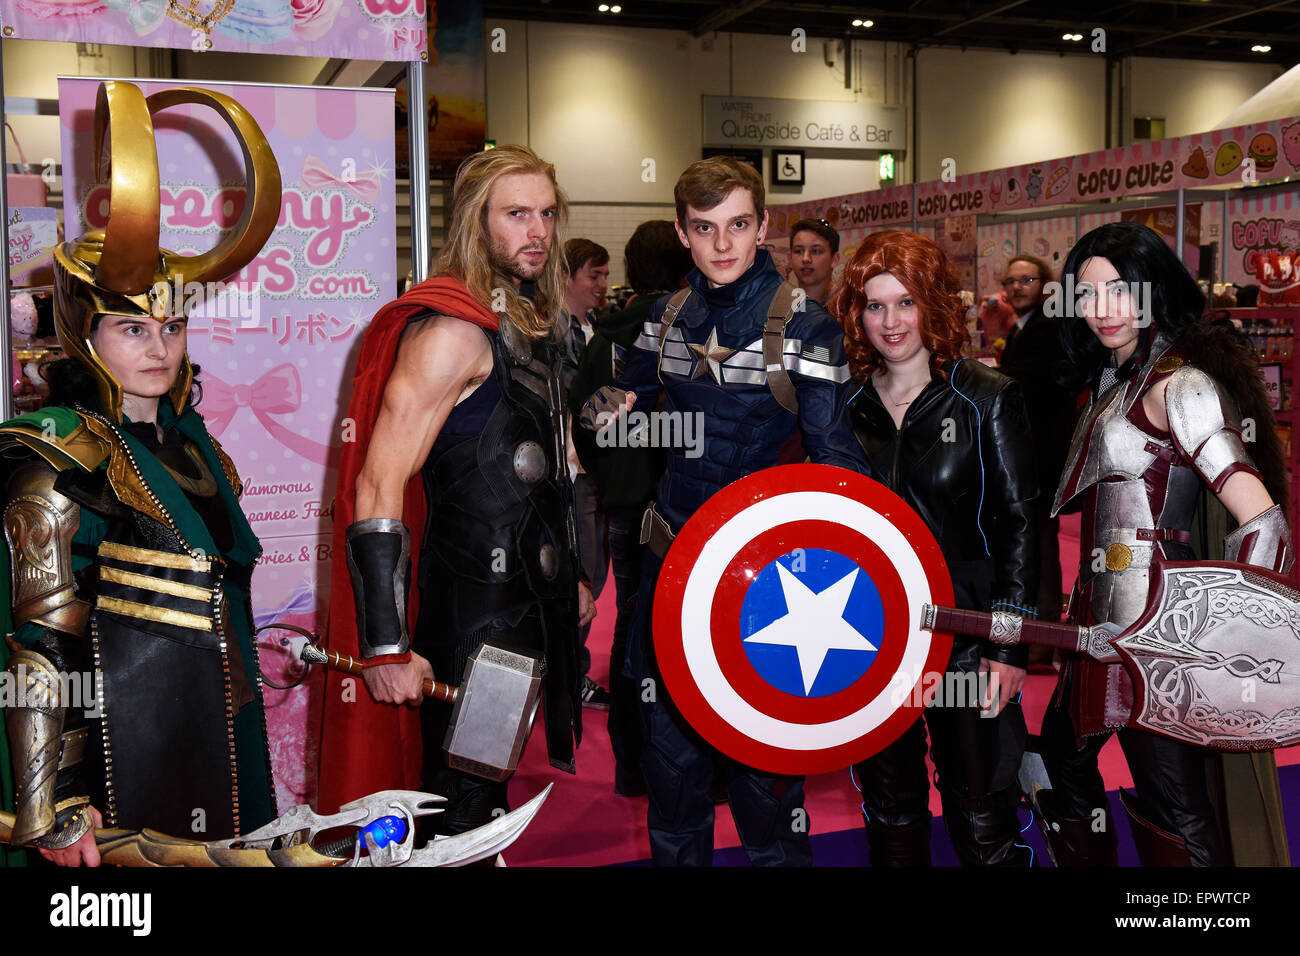 Excel Centre, London, UK. 22nd May, 2015. Cosplay fans dressed as various comic book super heroes at the opening - Stock Image